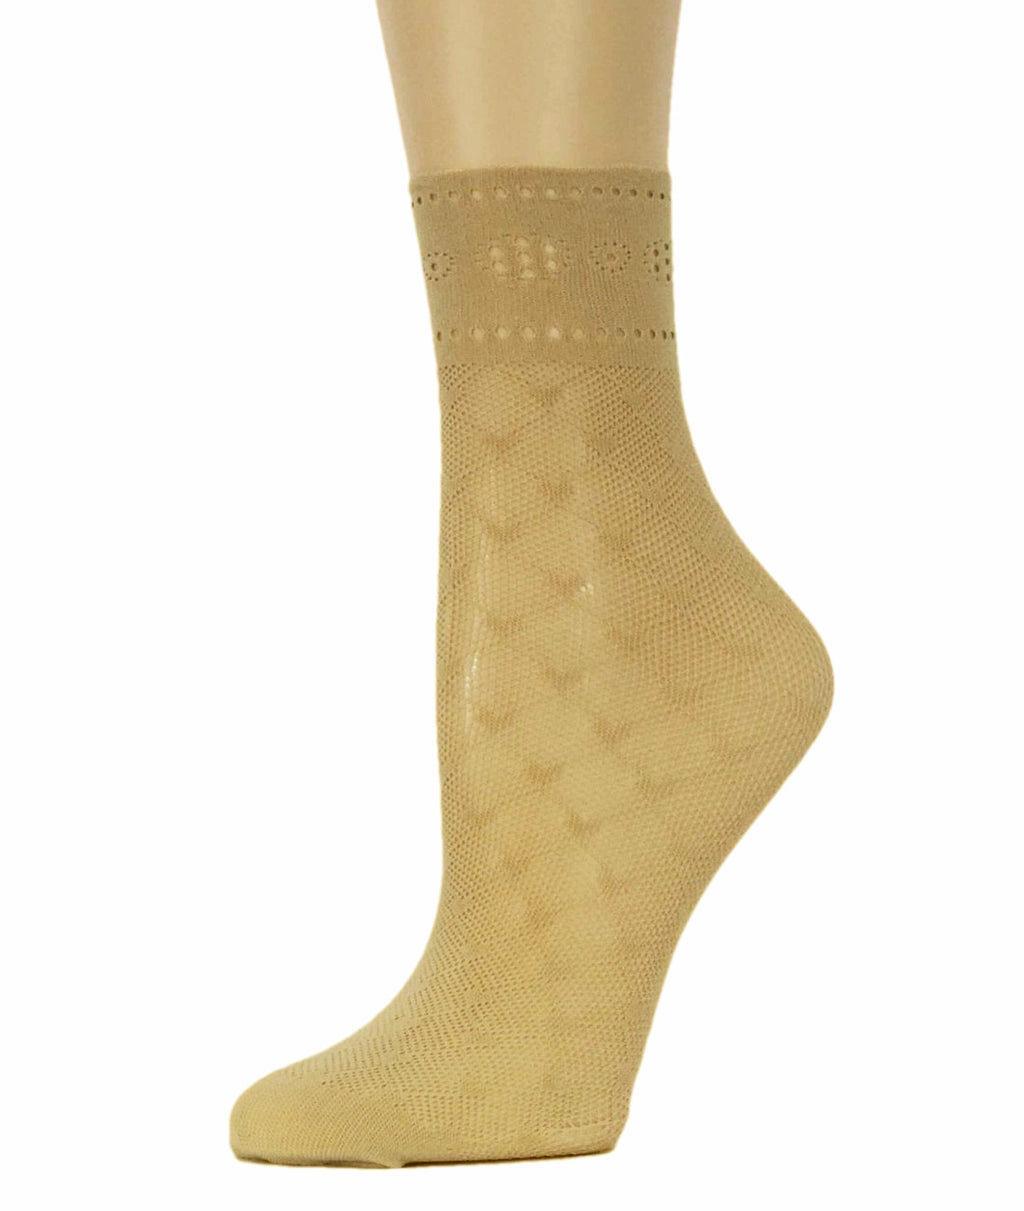 Little Hearts Mesh Socks